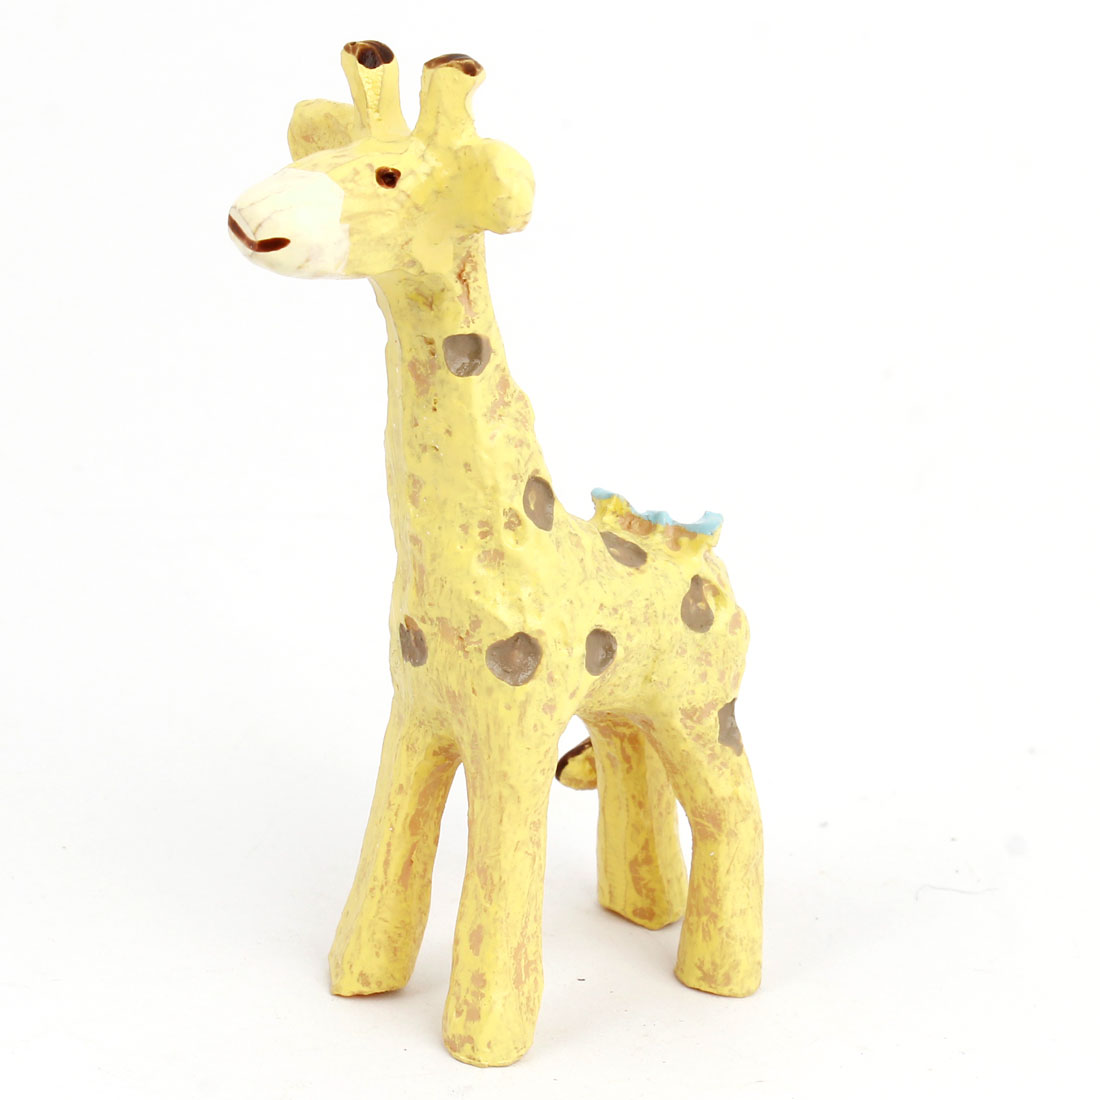 Tabletop Adorn Simulation Giraffe Shape Ornament Beige